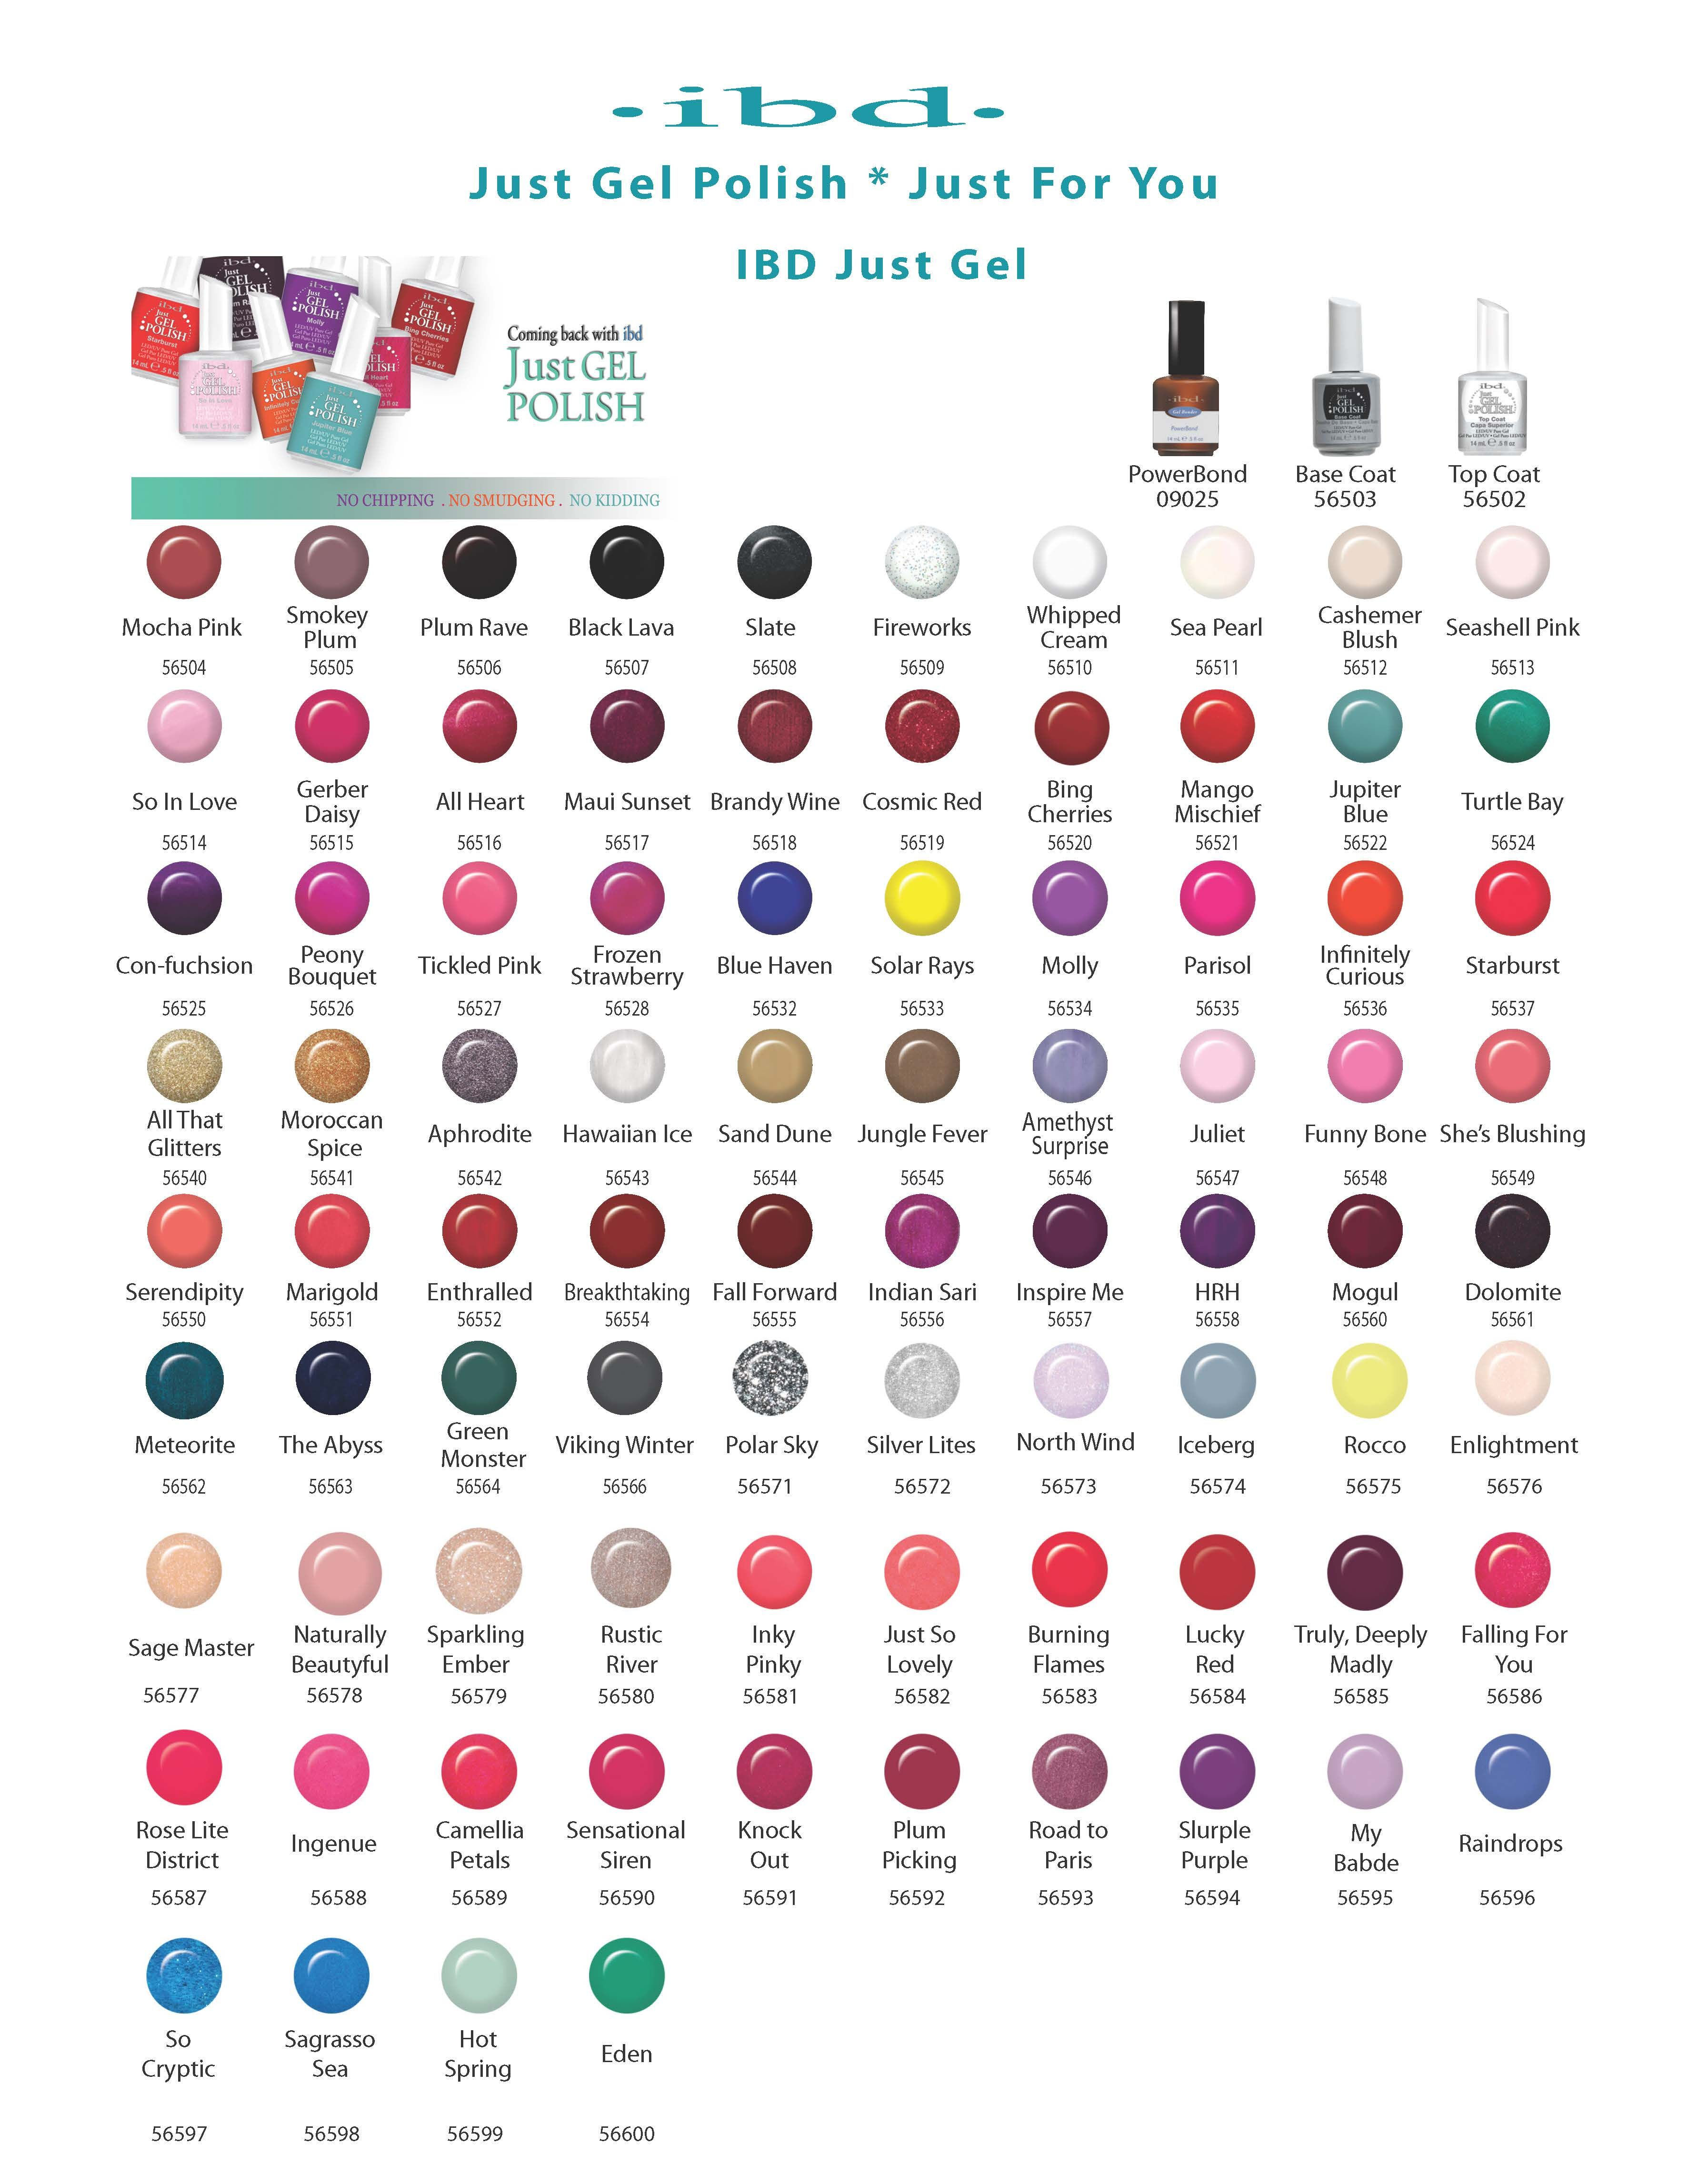 Pin by Toni Rodriguez on Nails & Beauty | Pinterest | Colour chart ...